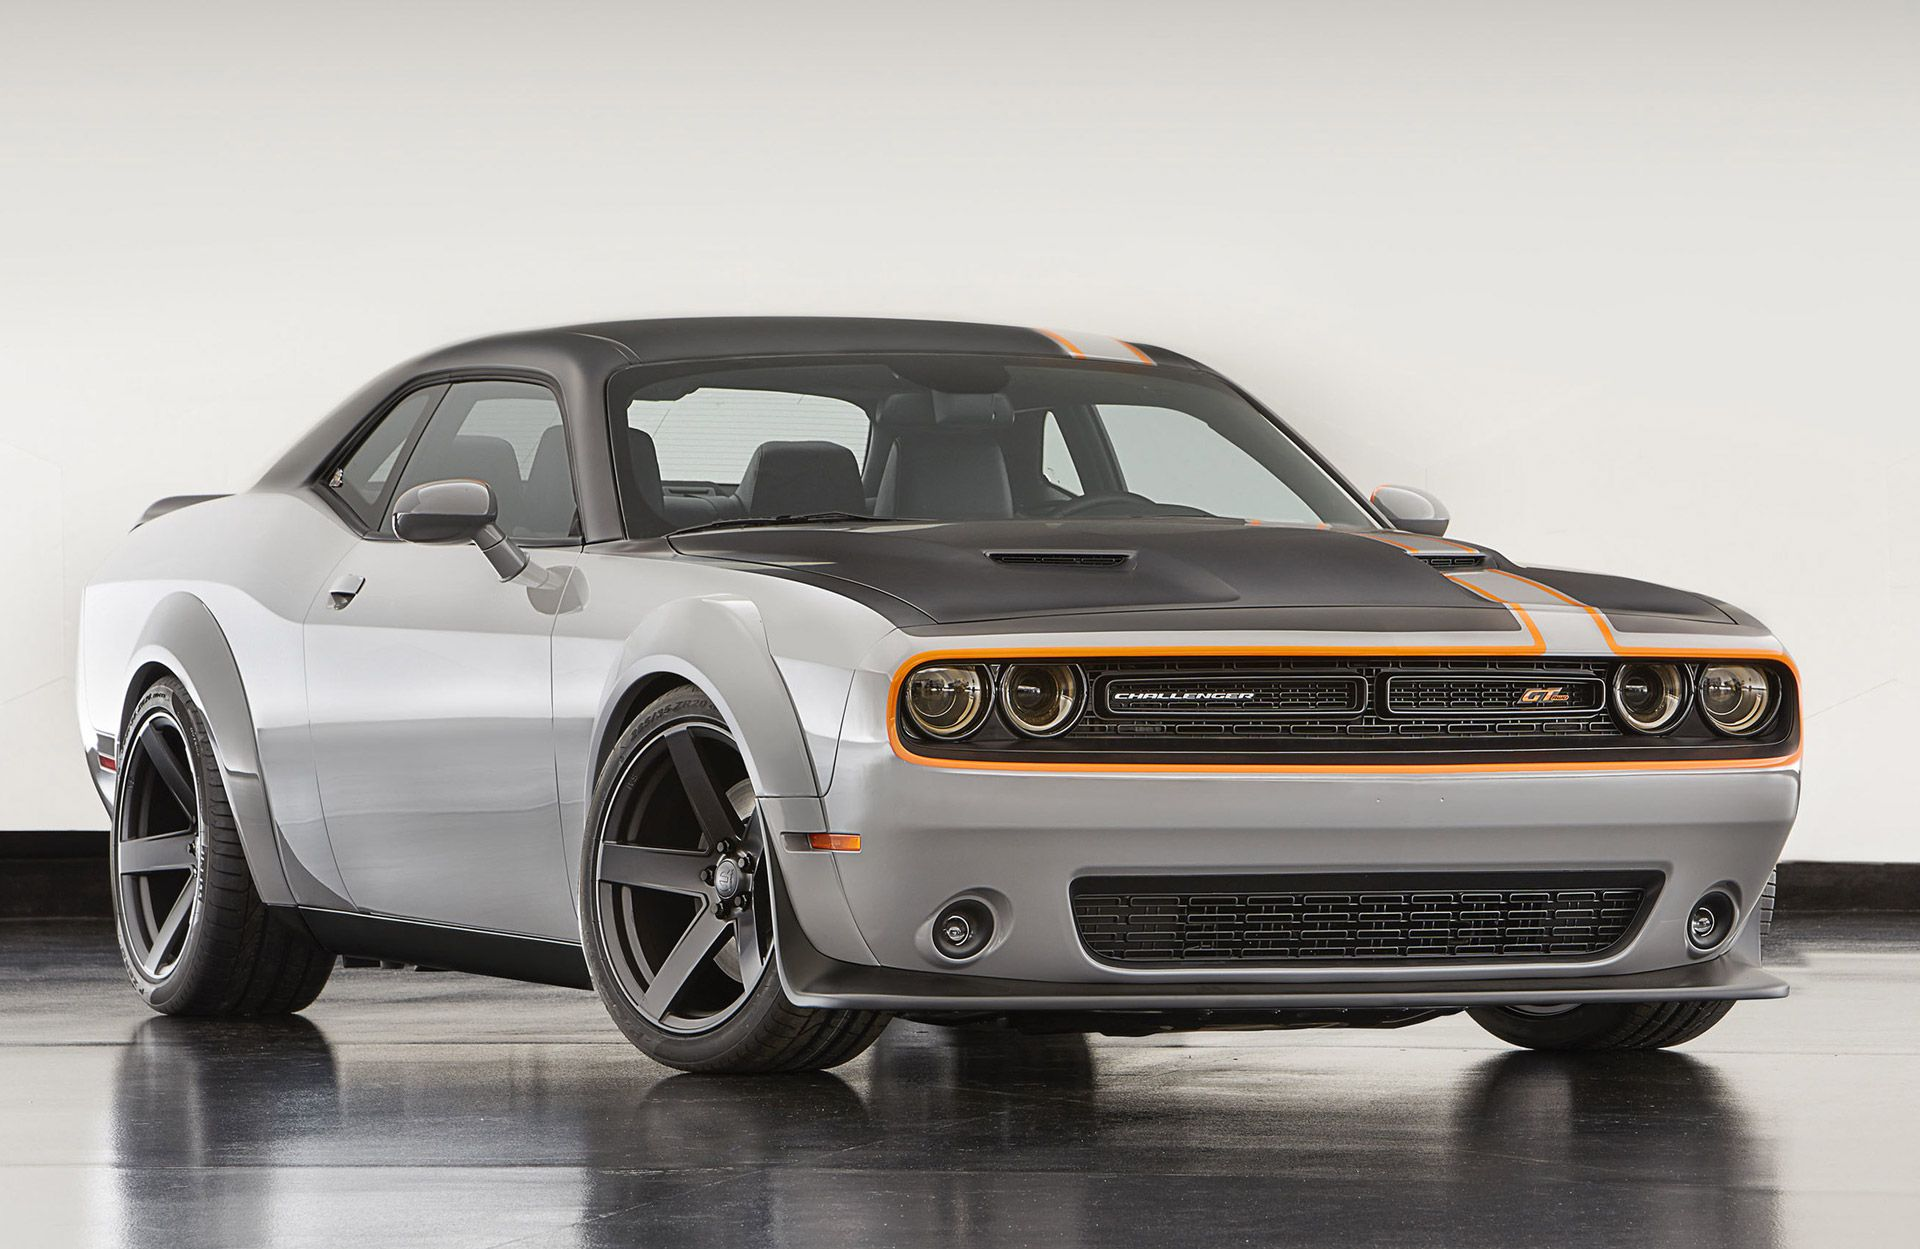 Among an avalanche of mopar concepts the dodge challenger gt awd concept is one of the company s headline acts at the 2015 sema show in las vegas